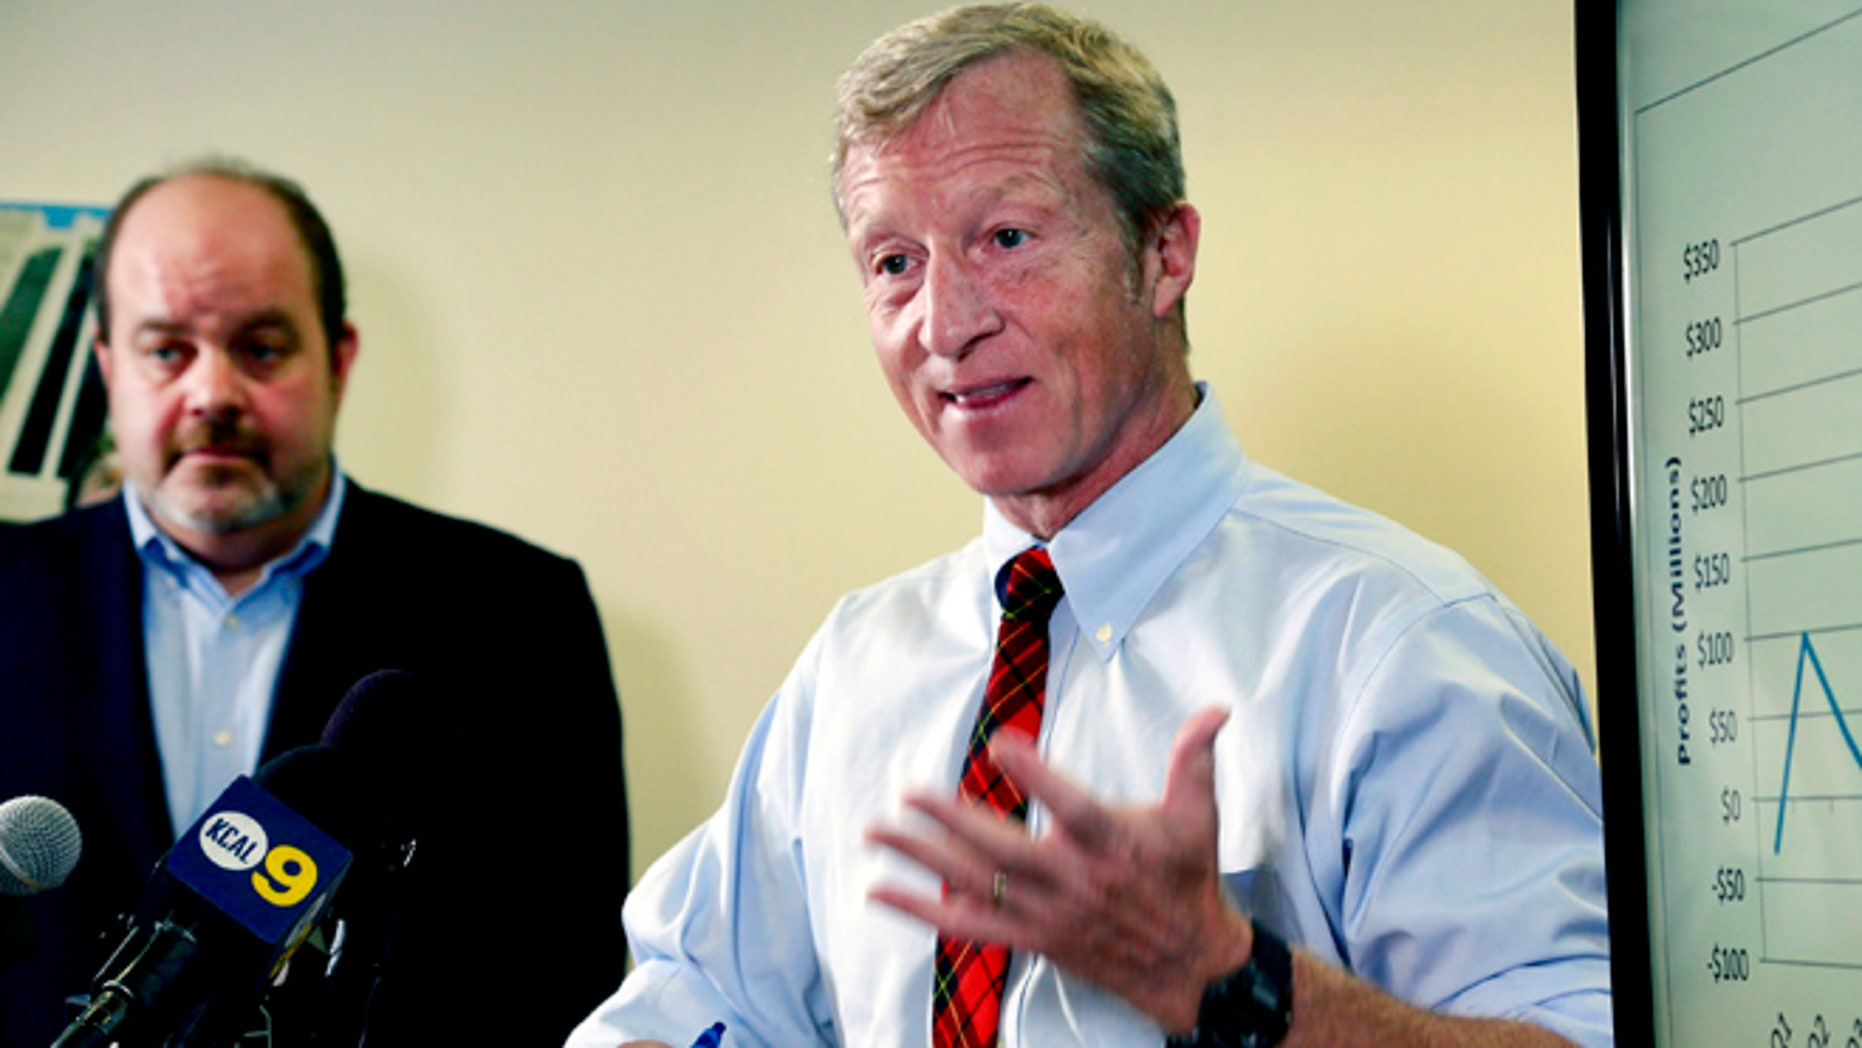 Billionaire climate activist Tom Steyer, right, speaks during a news conference with consumer advocate Jamie Court, left, president of Consumer Watchdog in Santa Monica, Calif.